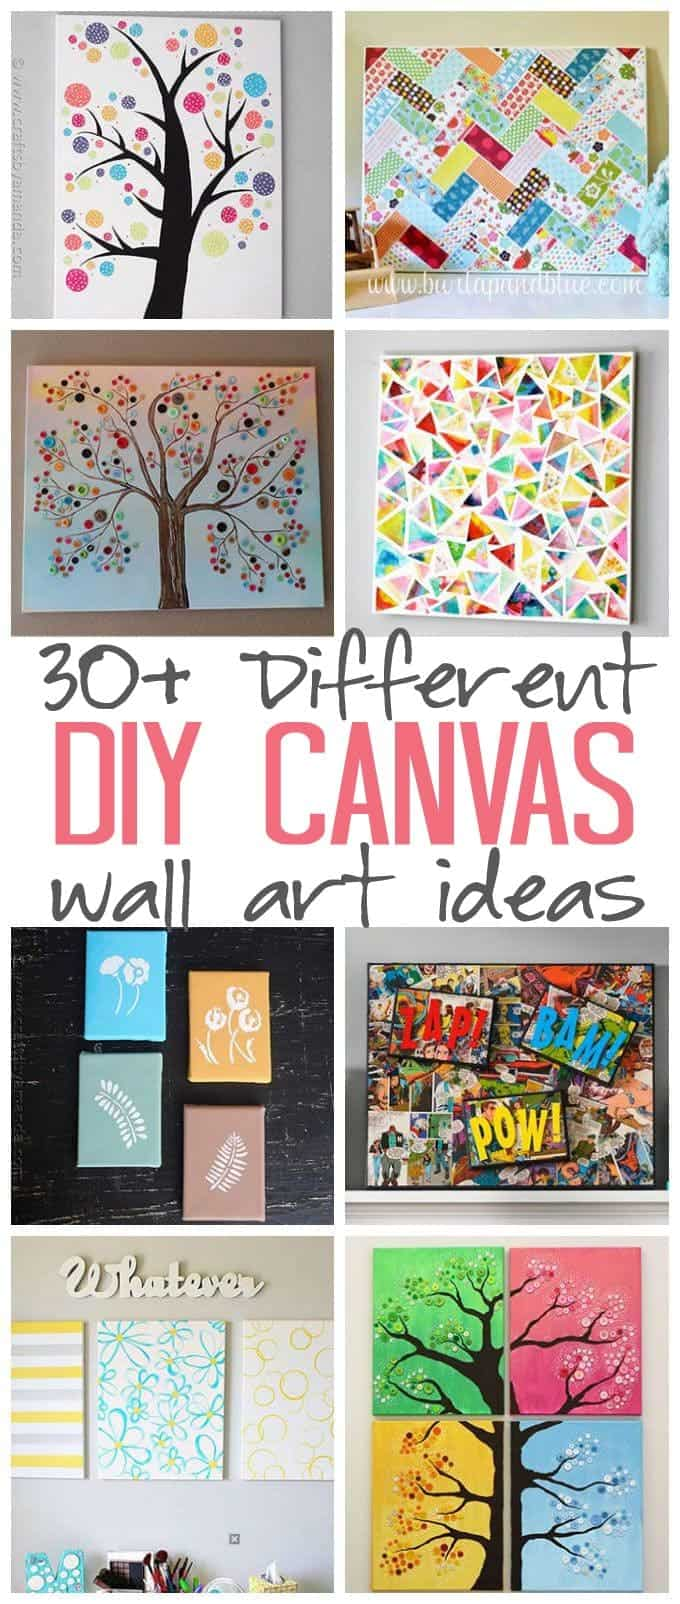 Diy Kitchen Wall Art Canvas Wall Art Ideas 30 Canvas Tutorials